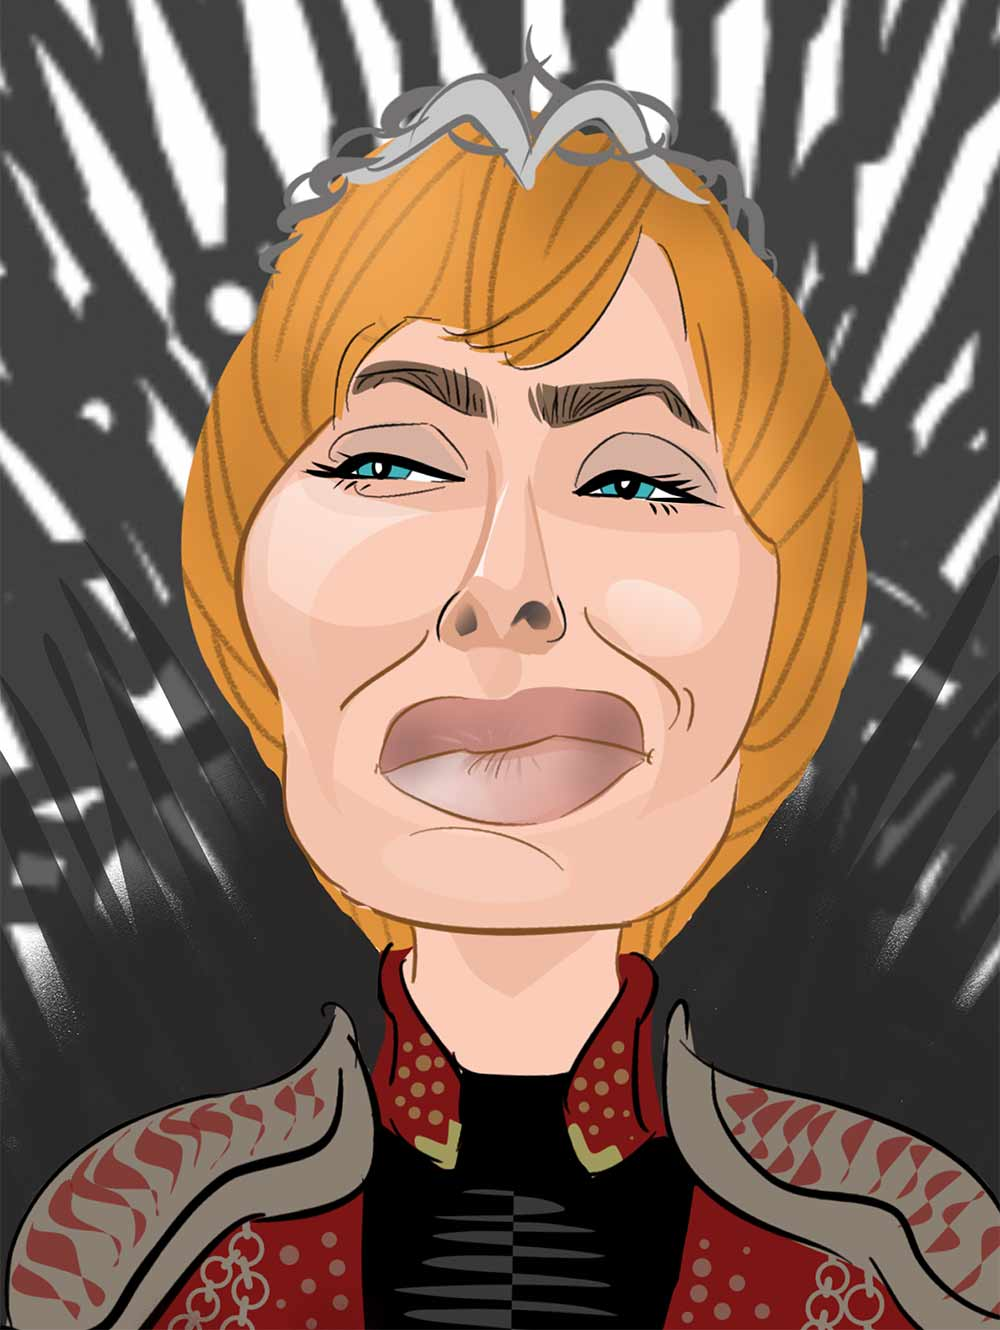 cersei lannister caricature on the iron throne